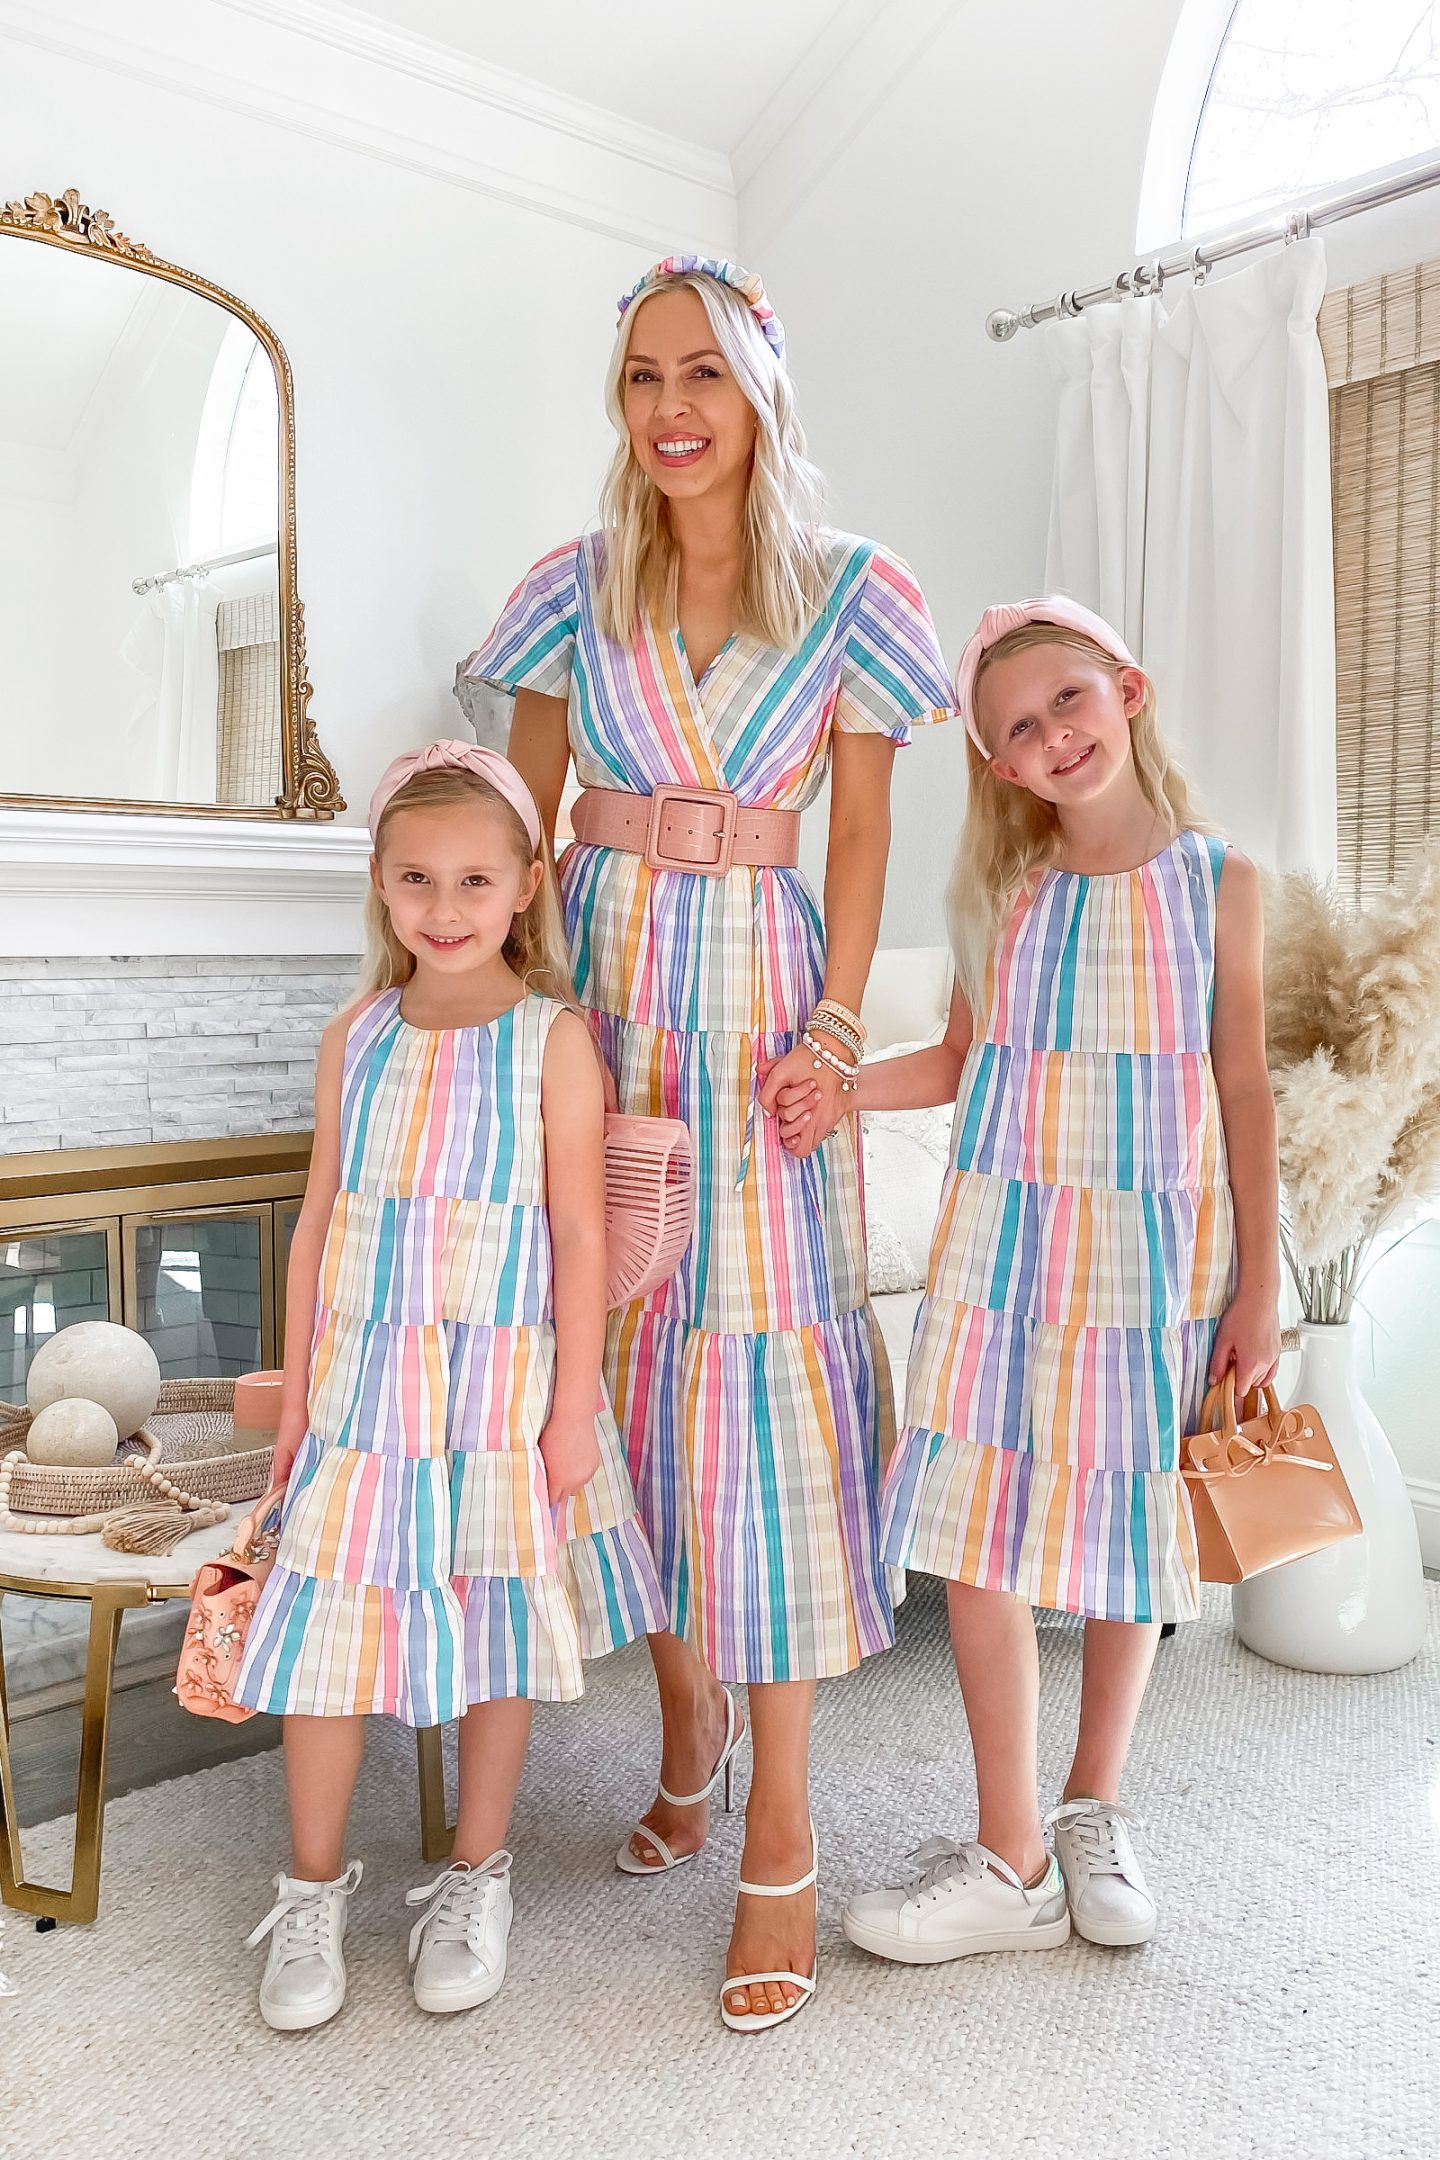 Spring style inspiration for mommy and me, by Lombard & Fifth Veronica Levy. Pastels and feminine style ideas.